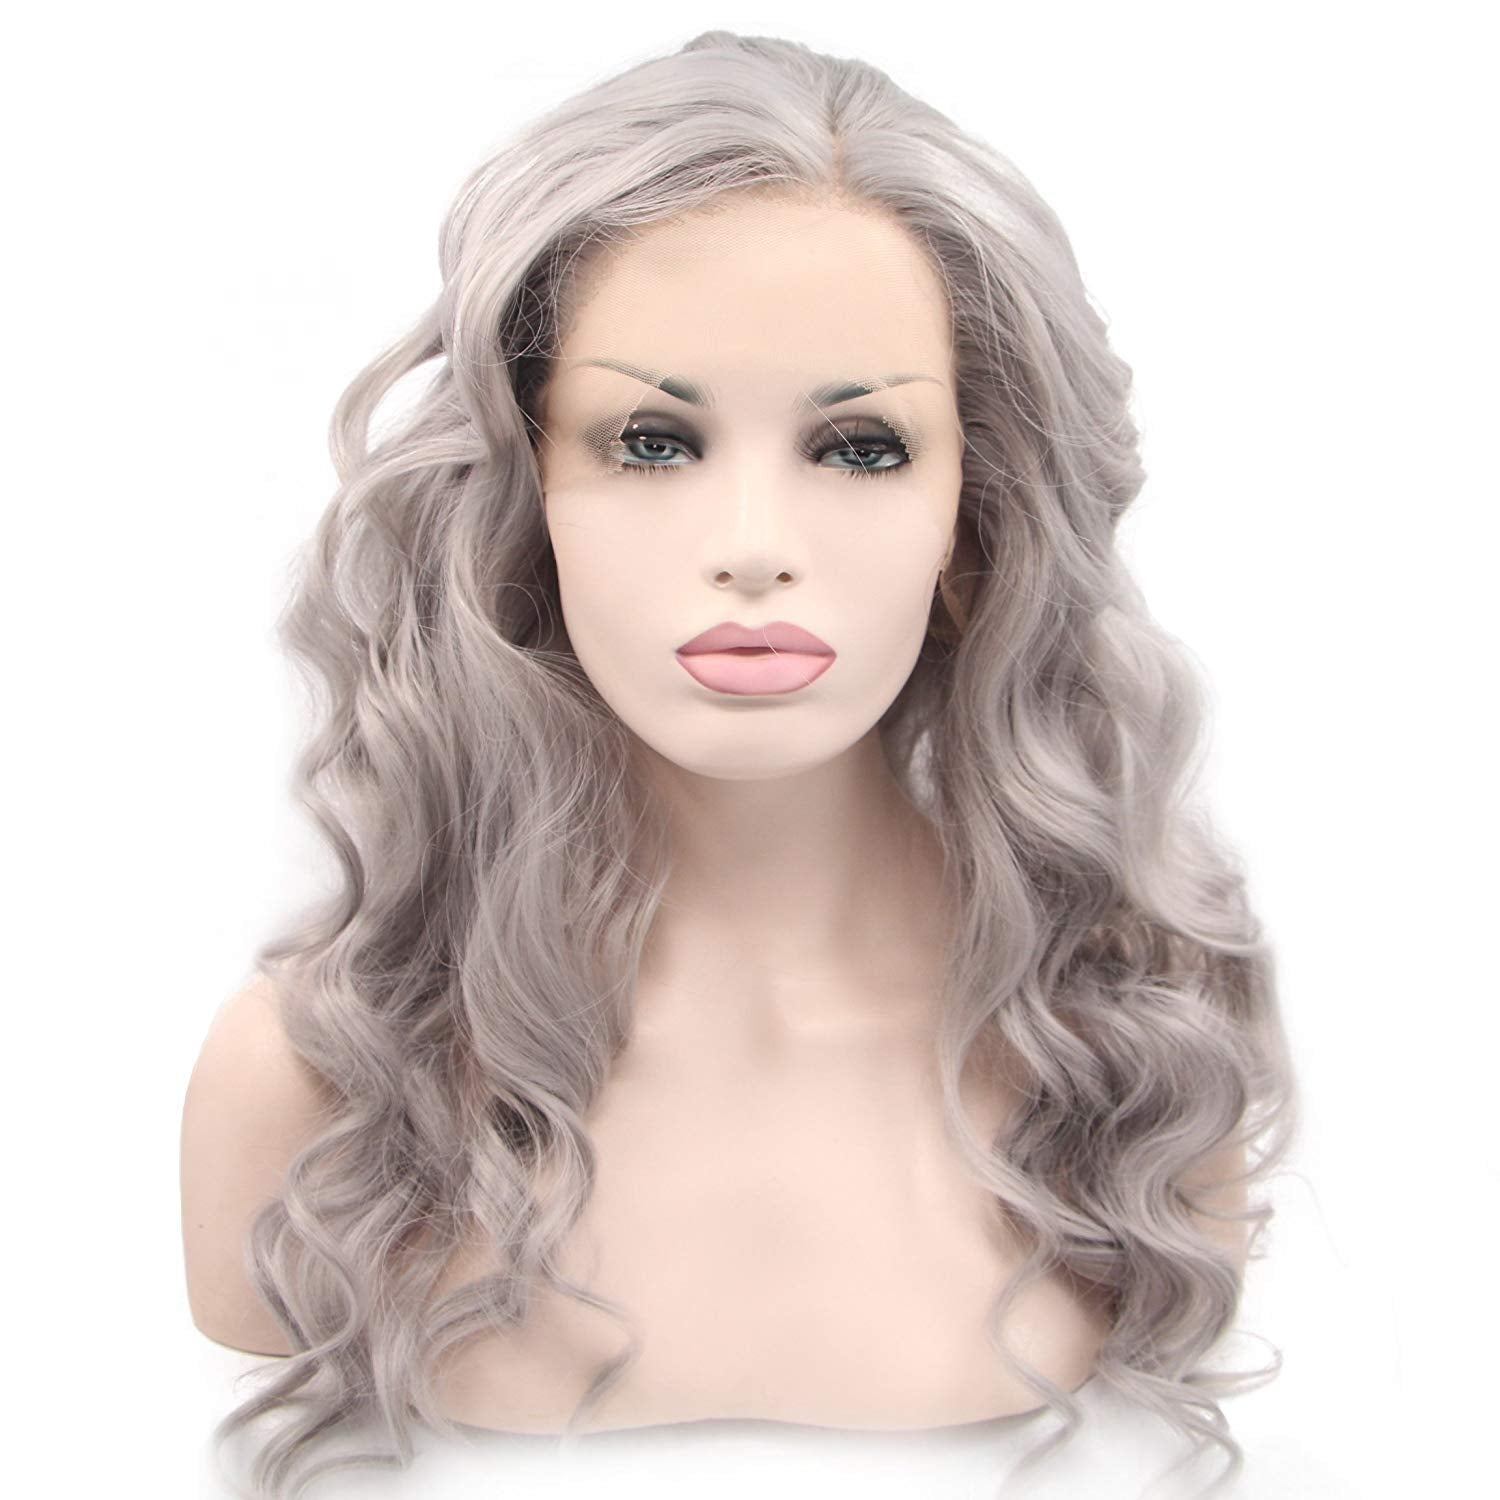 Lace Front 24 Inch Long Body Wave Heat Resistant Synthetic Silver Grey Cosplay Wig for Women Side Part